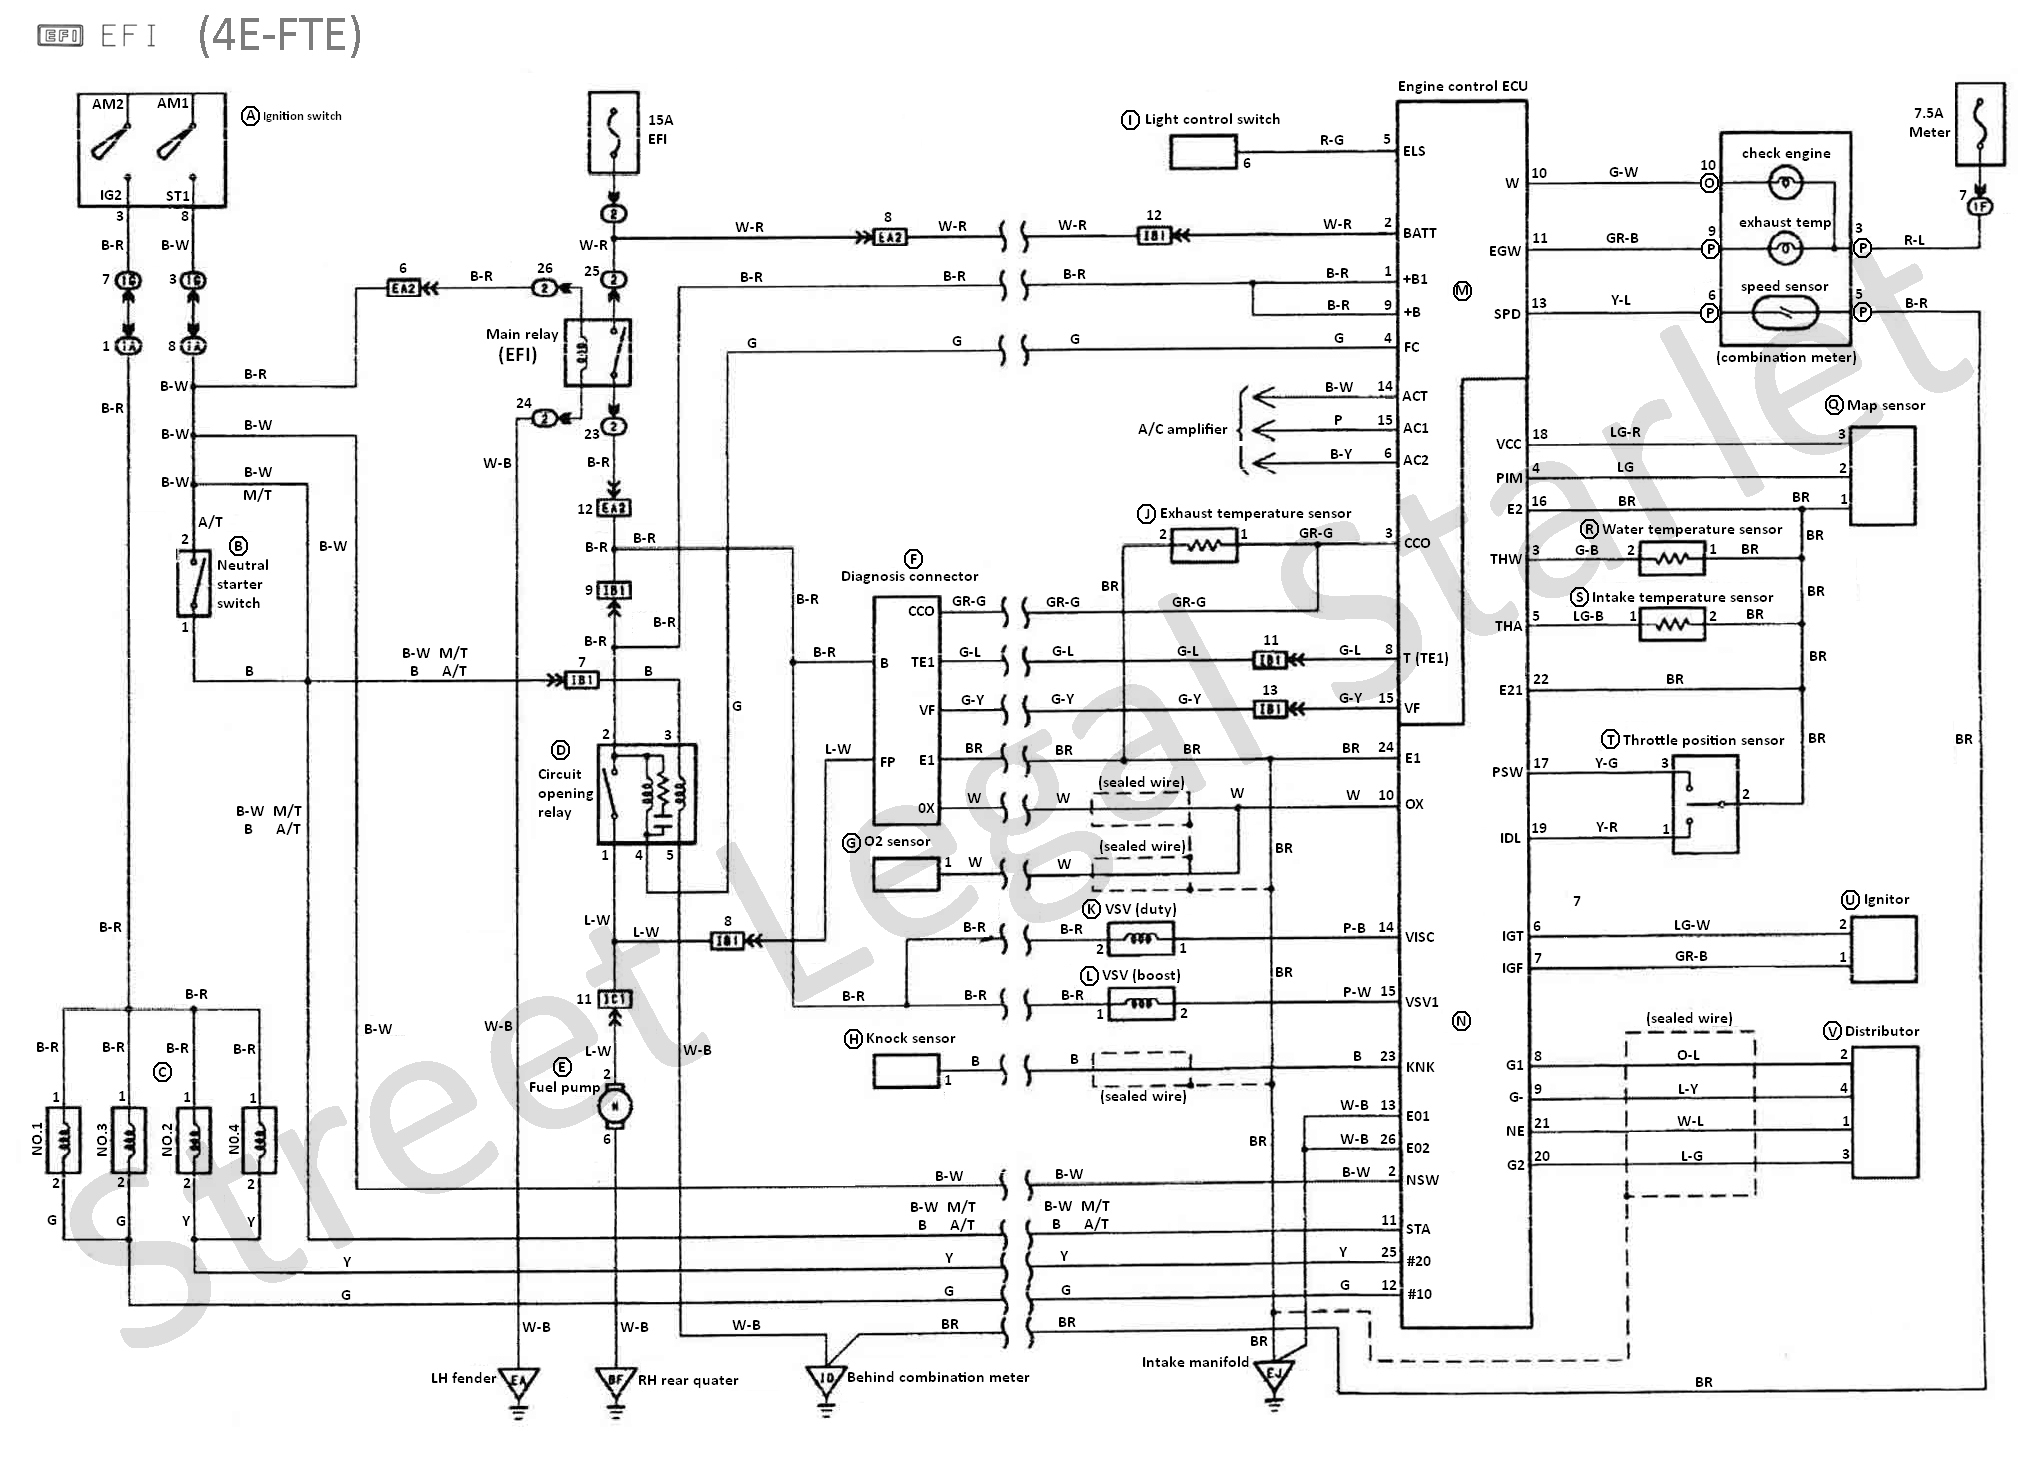 vl alternator wiring diagram cessna 172 17 images